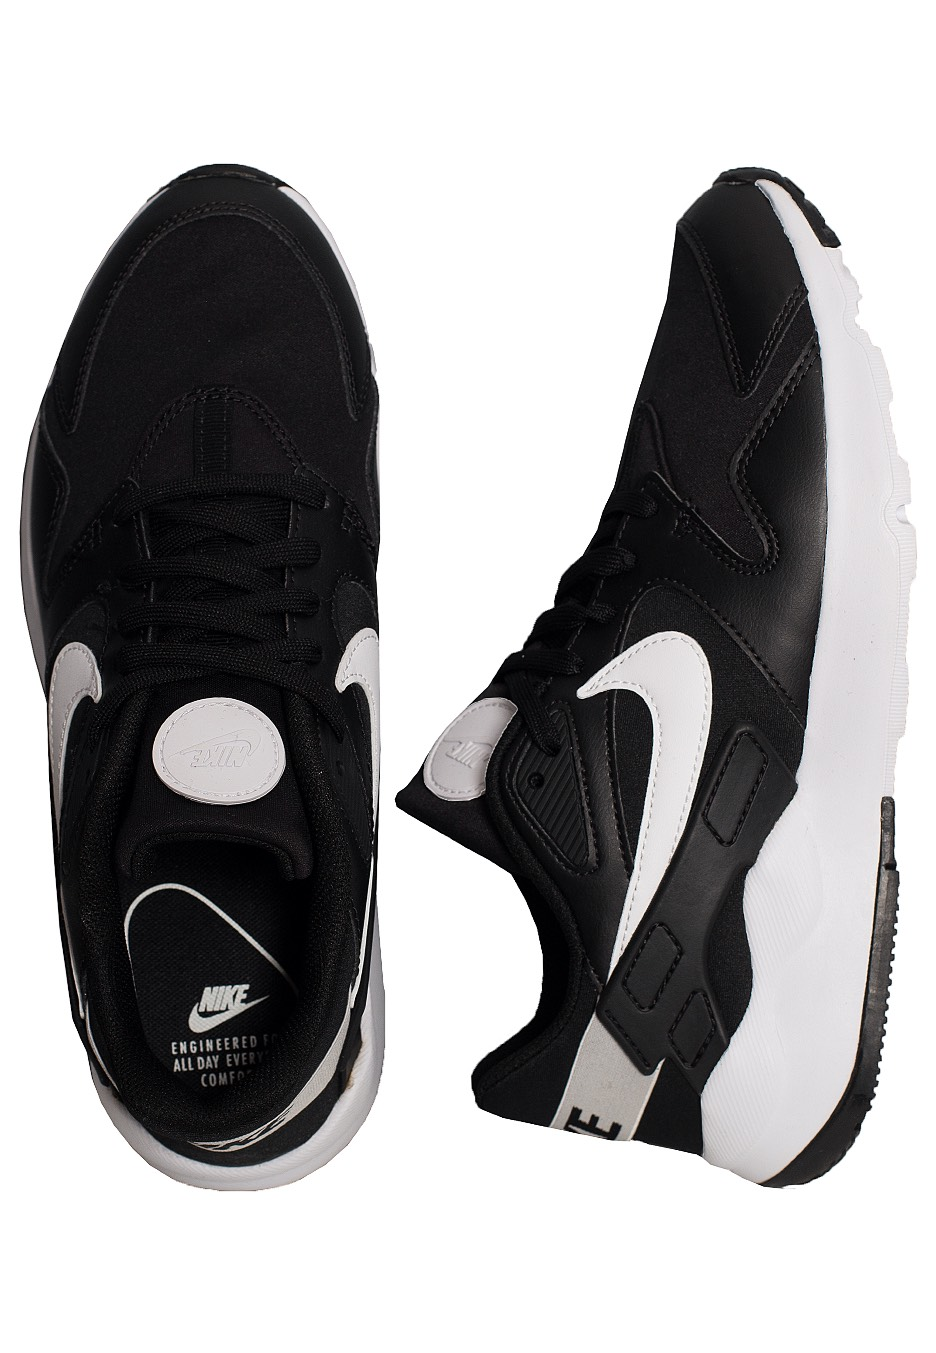 Racional horizonte Etna  Nike - LD Victory Black/White - Shoes - Impericon.com Worldwide